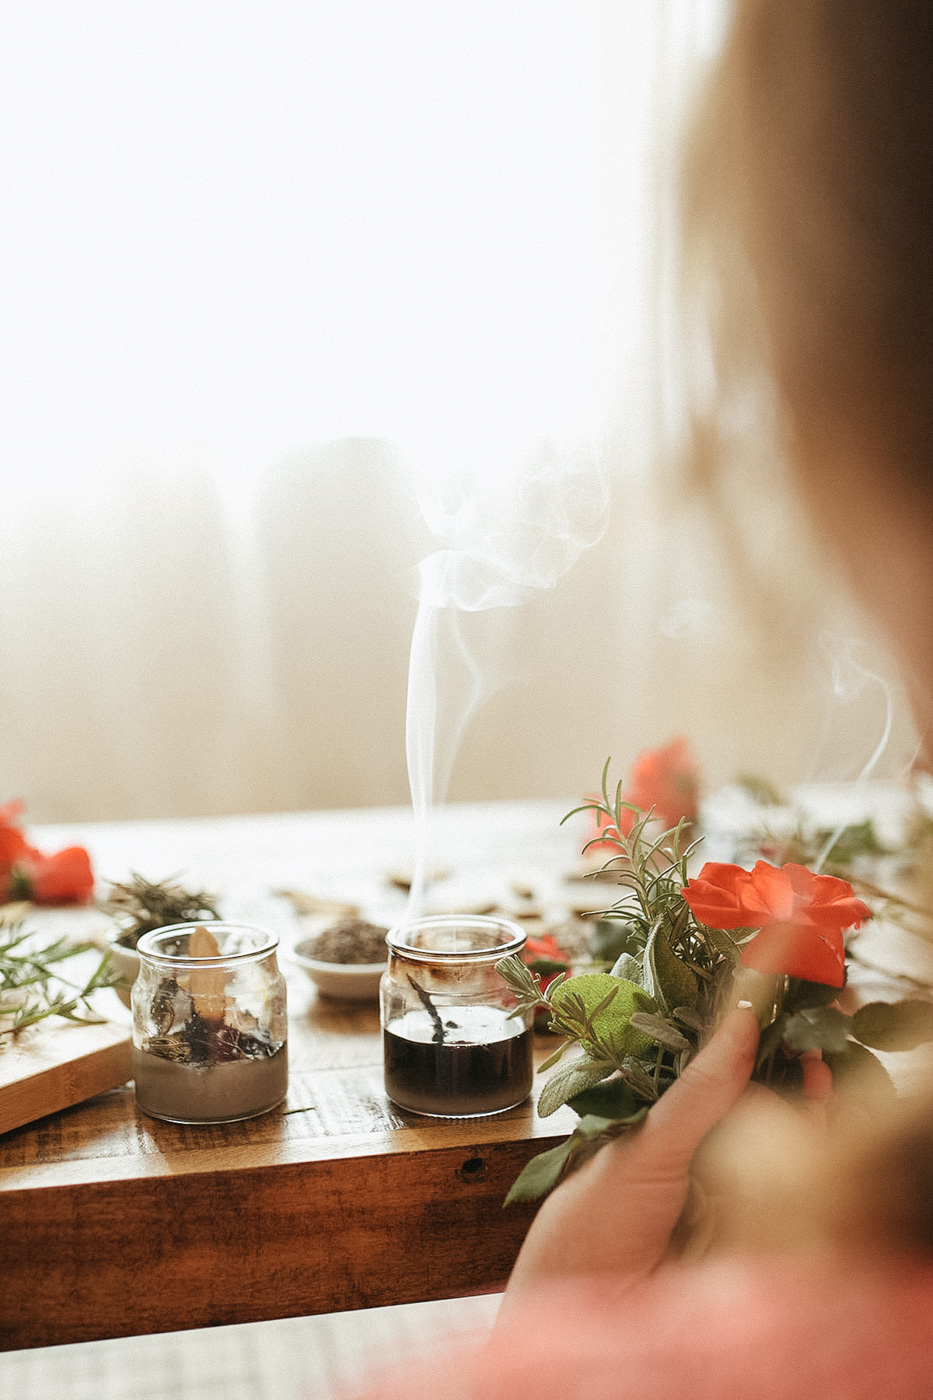 Herbs and Self-Care for Stress Management Course